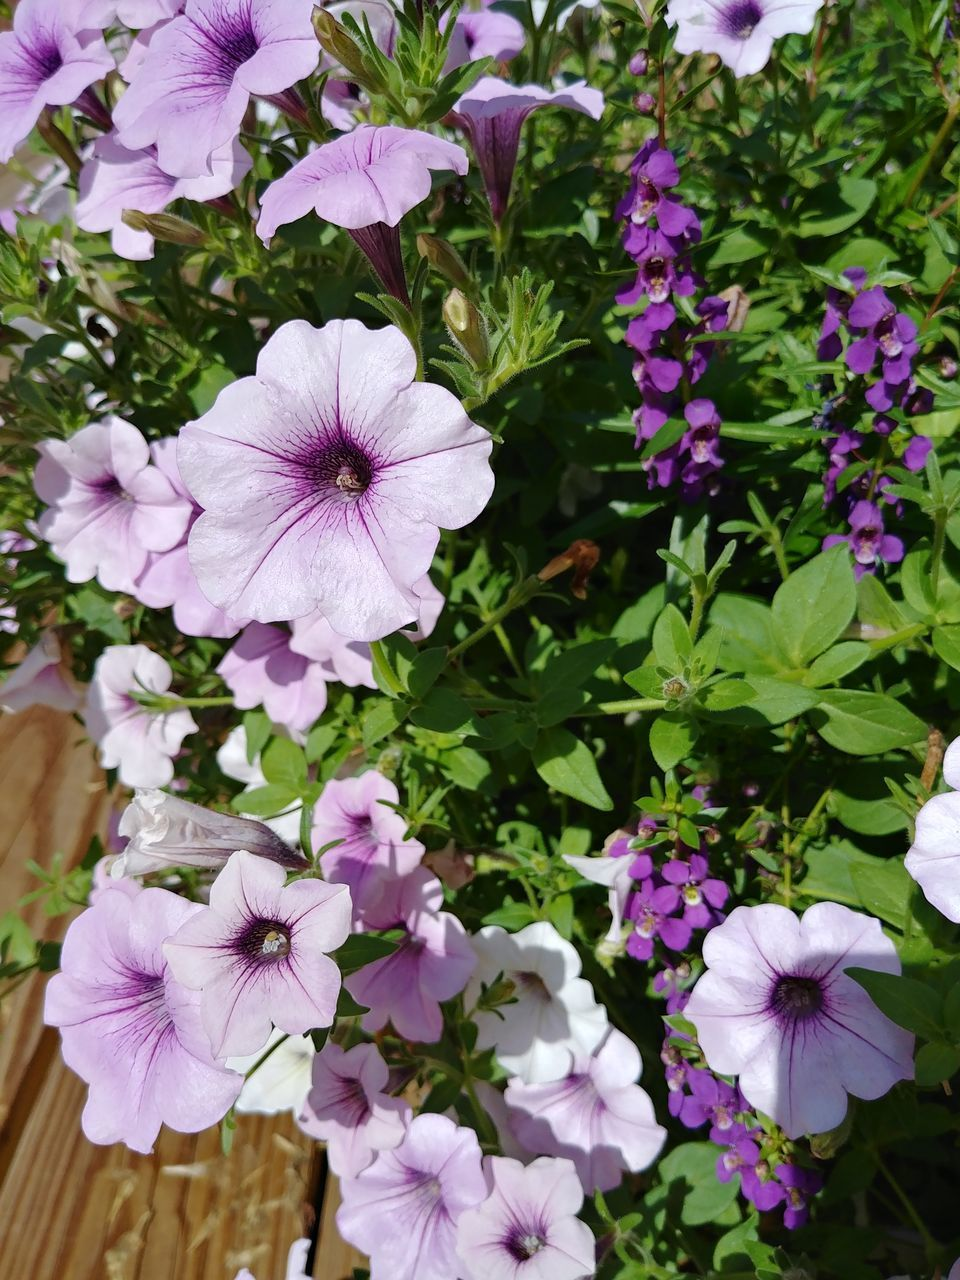 flowering plant, flower, vulnerability, fragility, plant, freshness, petal, beauty in nature, flower head, growth, inflorescence, close-up, pink color, petunia, nature, no people, day, white color, outdoors, high angle view, purple